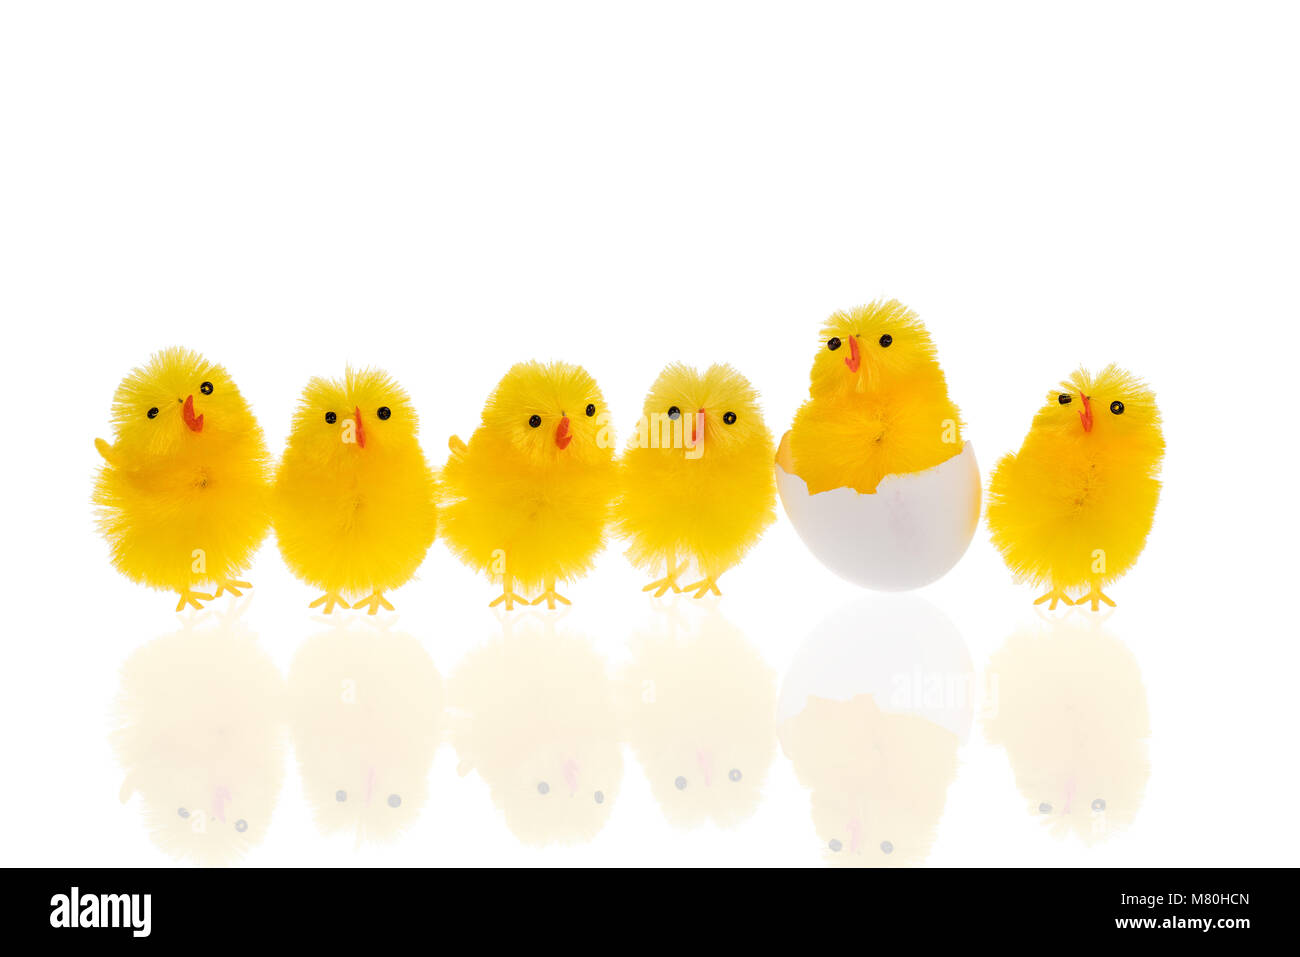 Six funny little yellow easter chickens on a row. One is still in the egg shell. The chickens are isolated on a - Stock Image